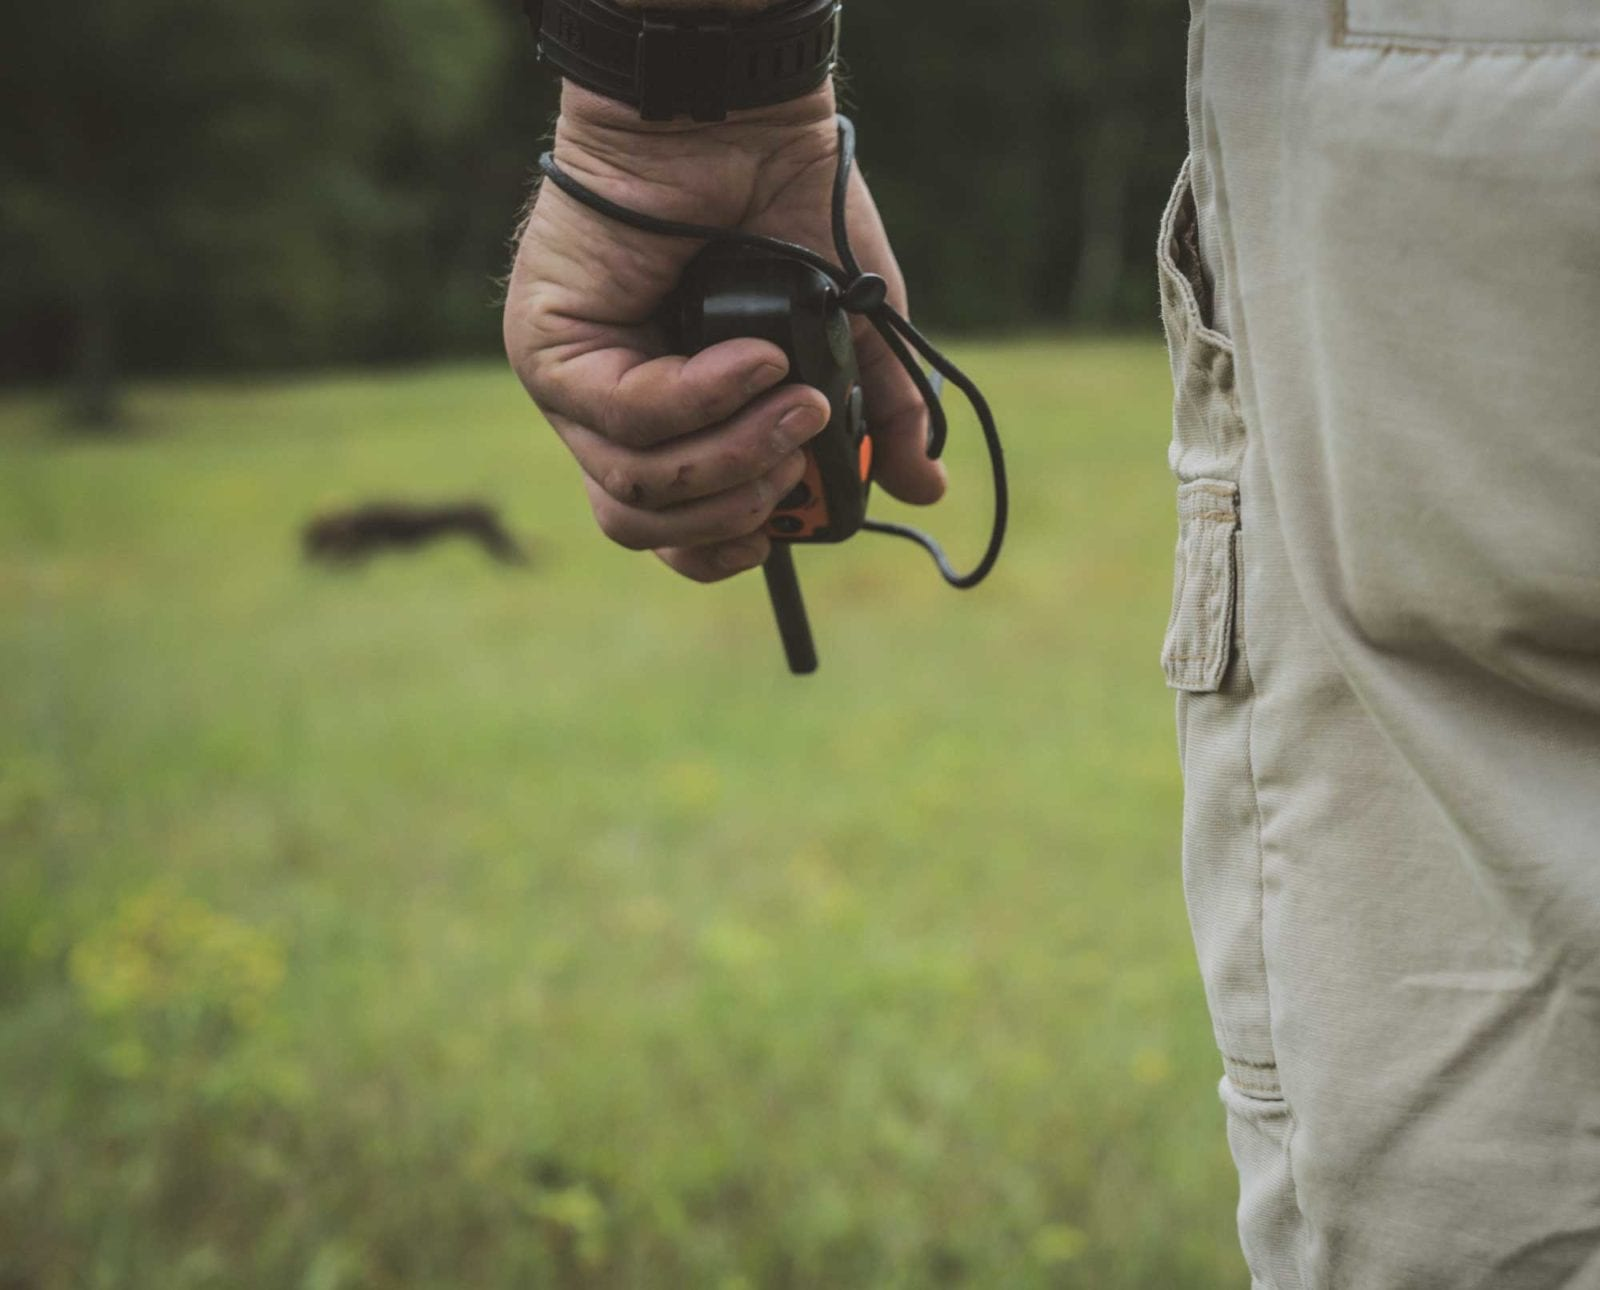 A bird dog trainer uses correct timing to correct a gun dog in the field.